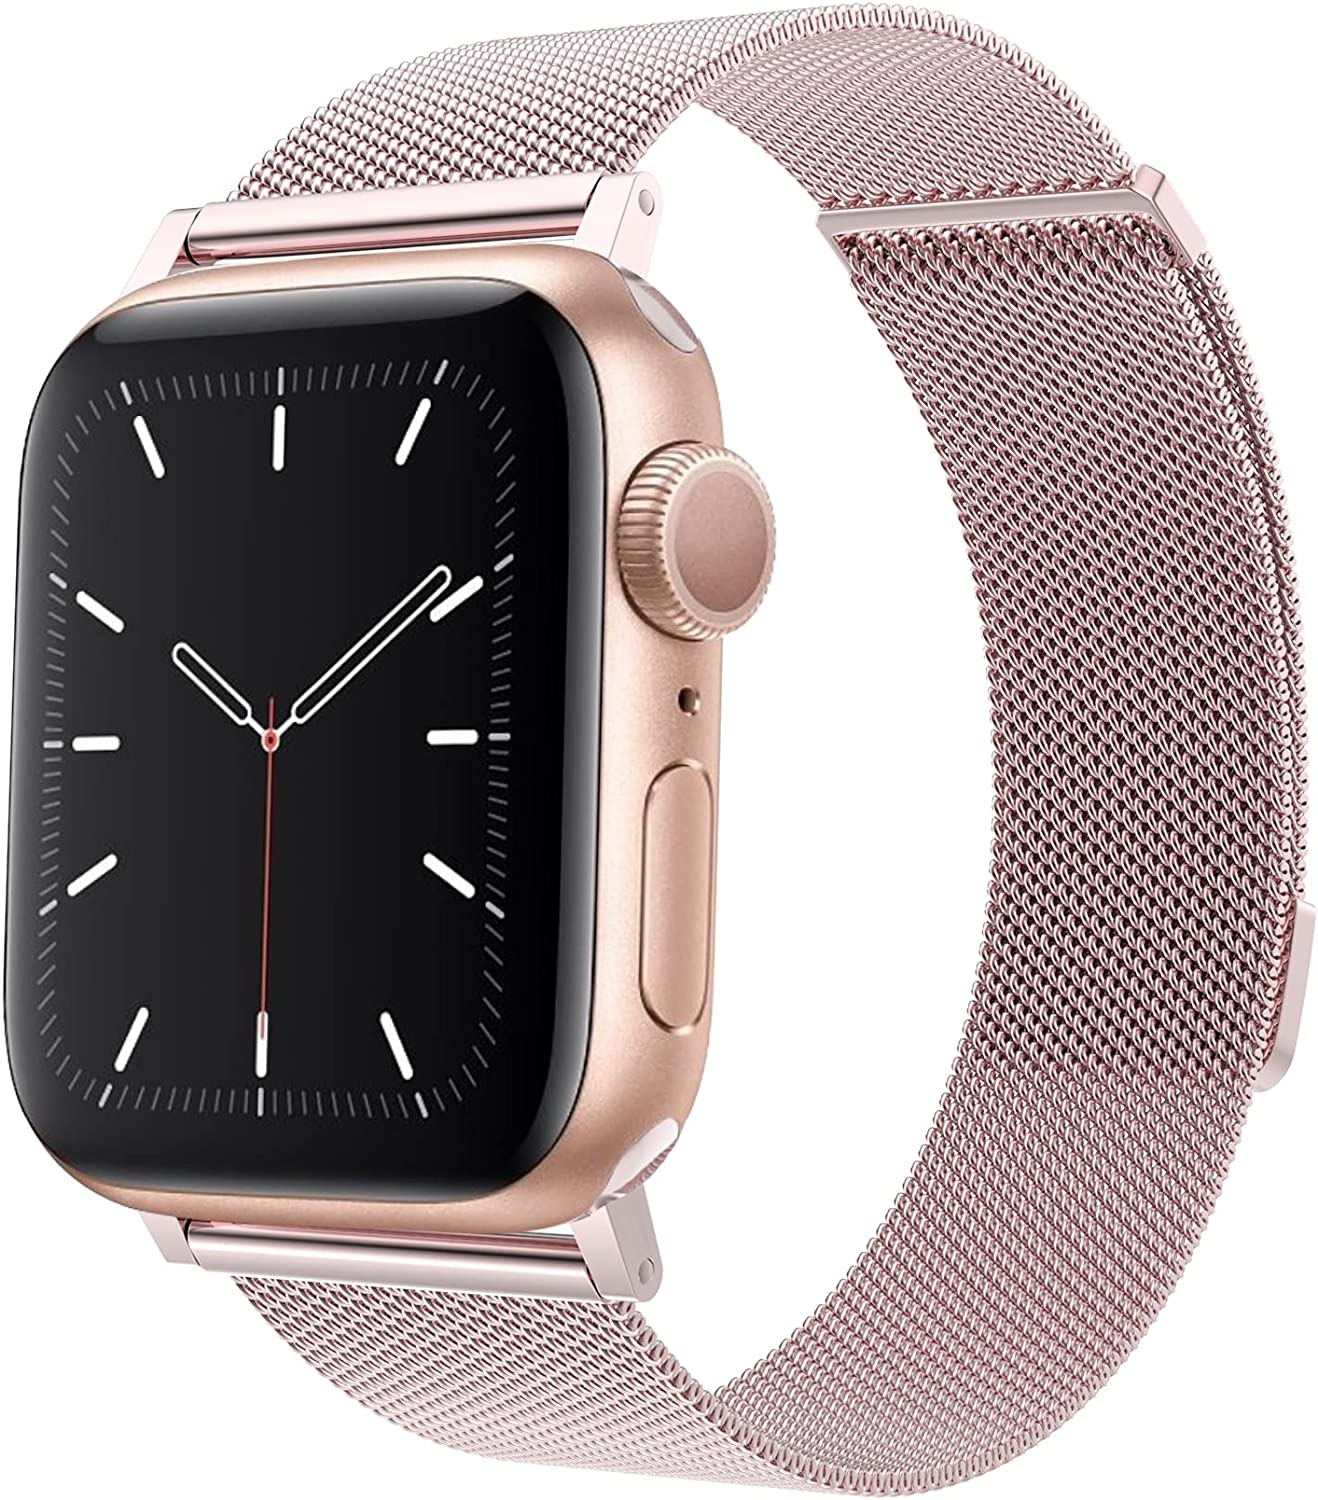 LKSA Compatible with Apple Watch Band 44mm 42mm 40mm 38mm,Stainless Steel Replacement Bands for iWatch Series 6/SE/5/4/3/2/1